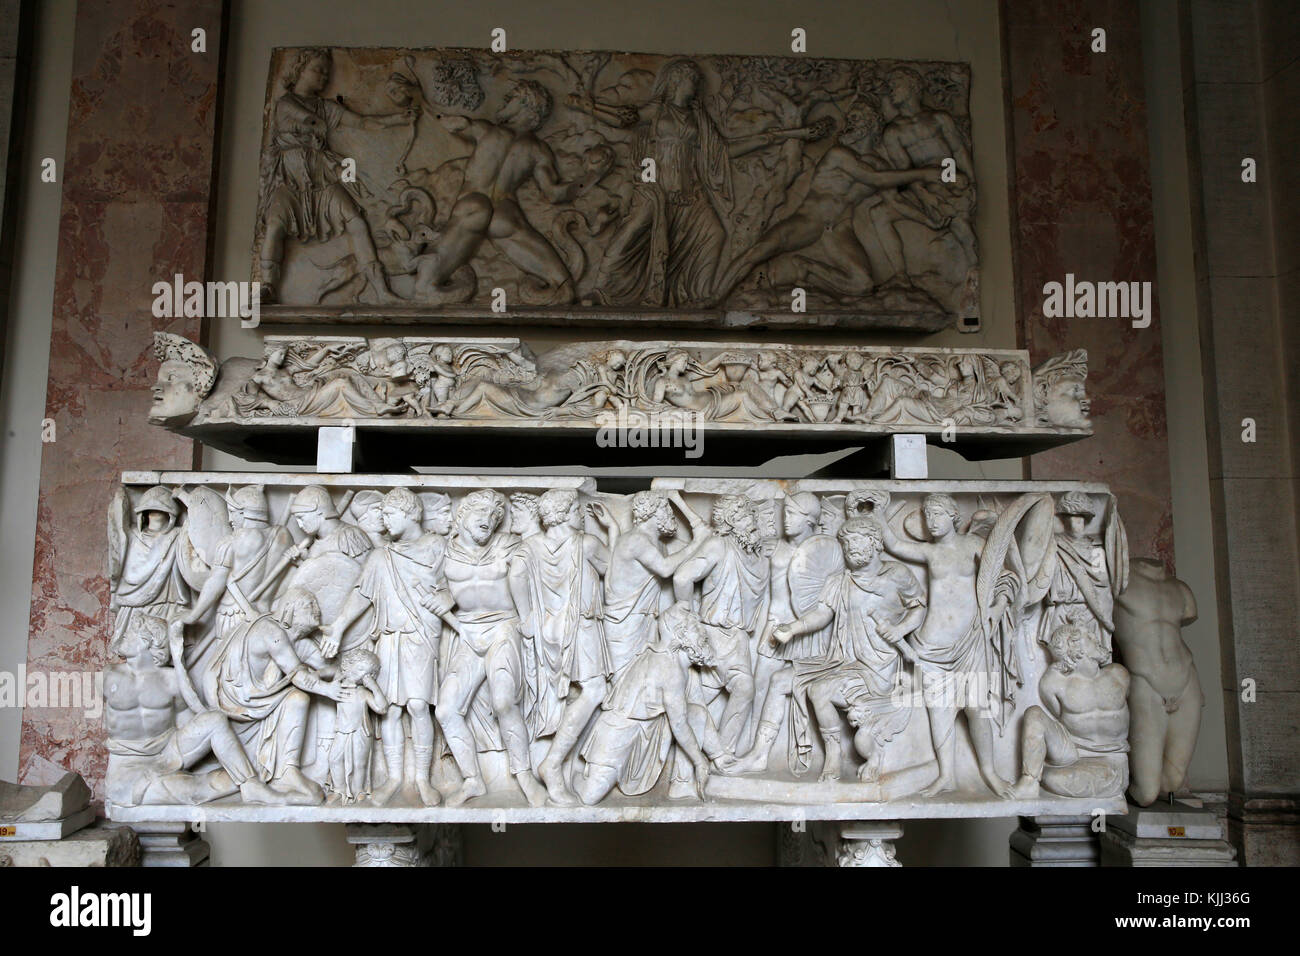 Vatican museums, Rome. Pio Clementino museum. Sarcophagus. Military triumph. Barbarians defeated by a Roman general. - Stock Image